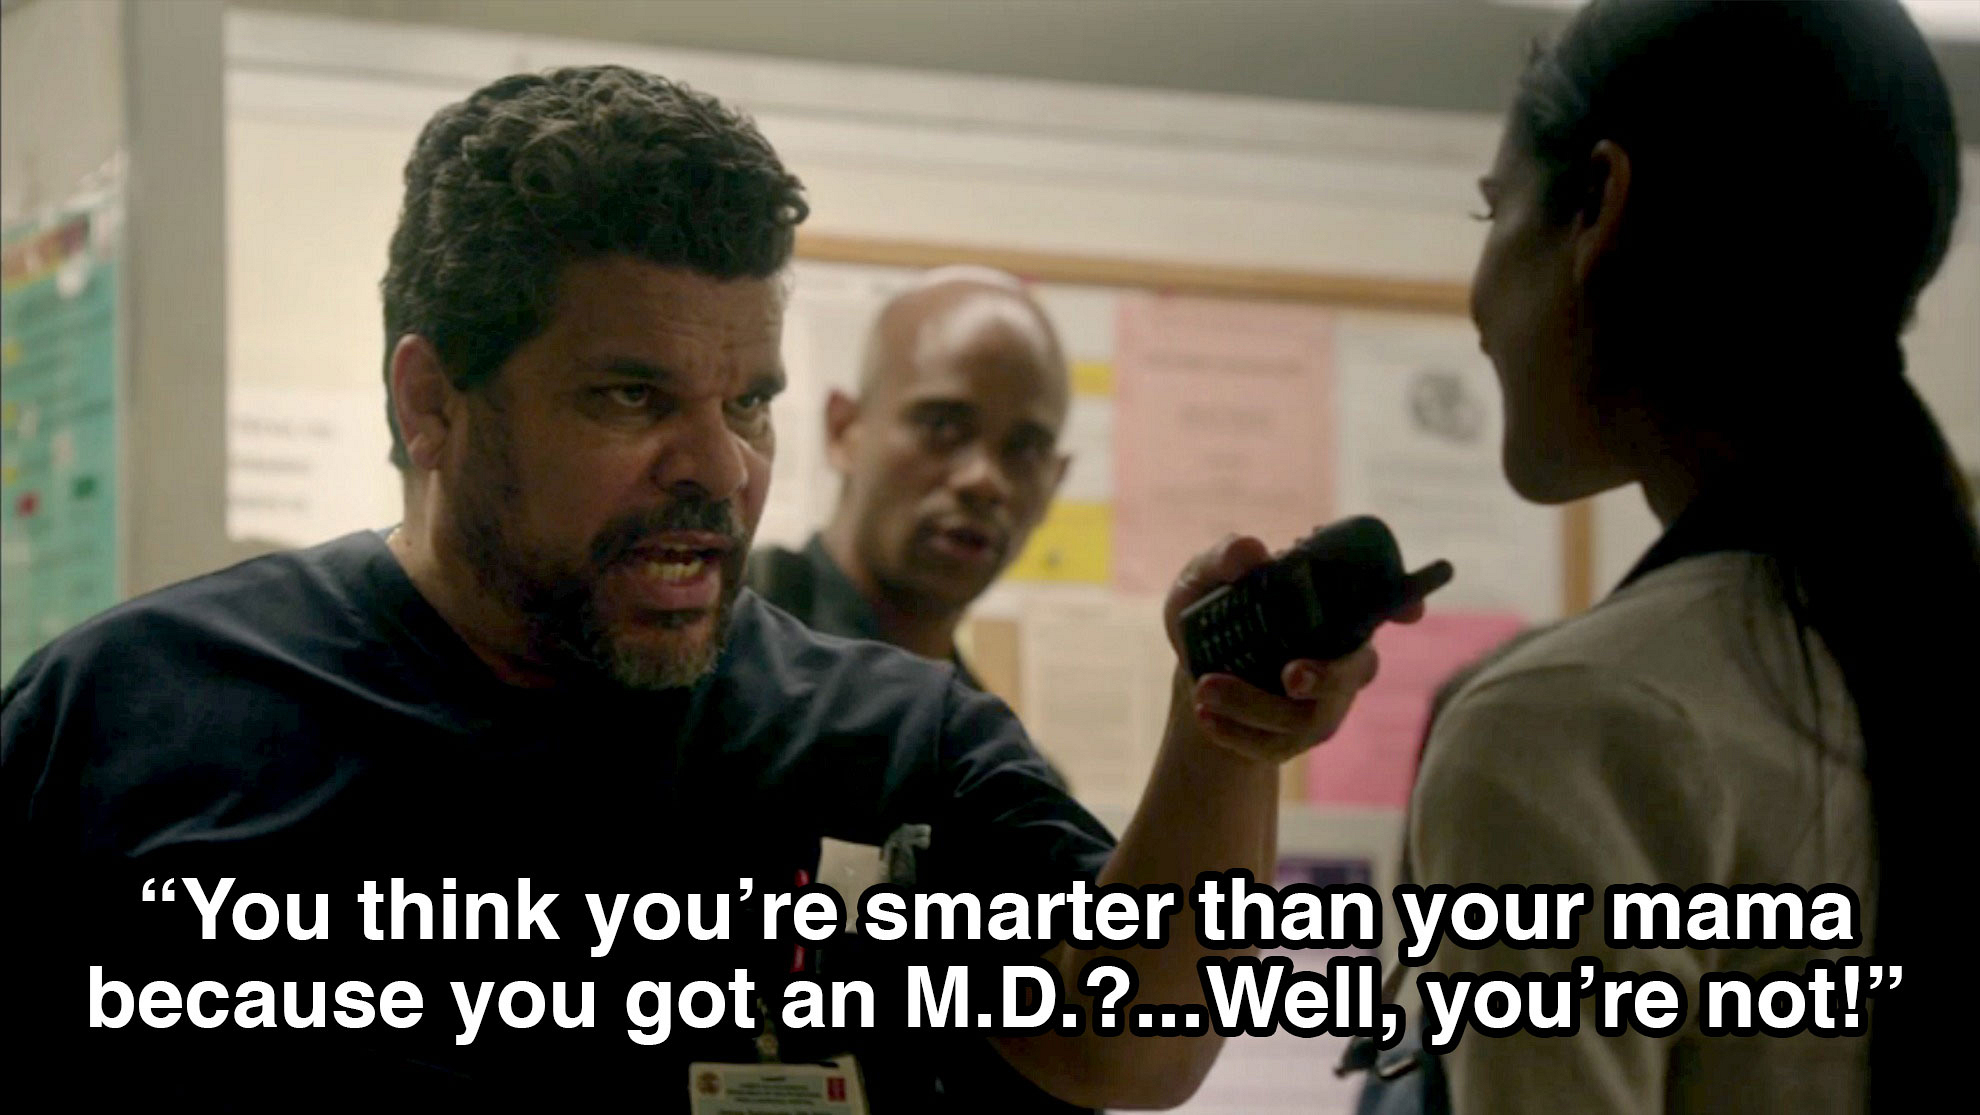 """You think you're smarter than your mama because you got an M.D.?... Well, you're not!"""